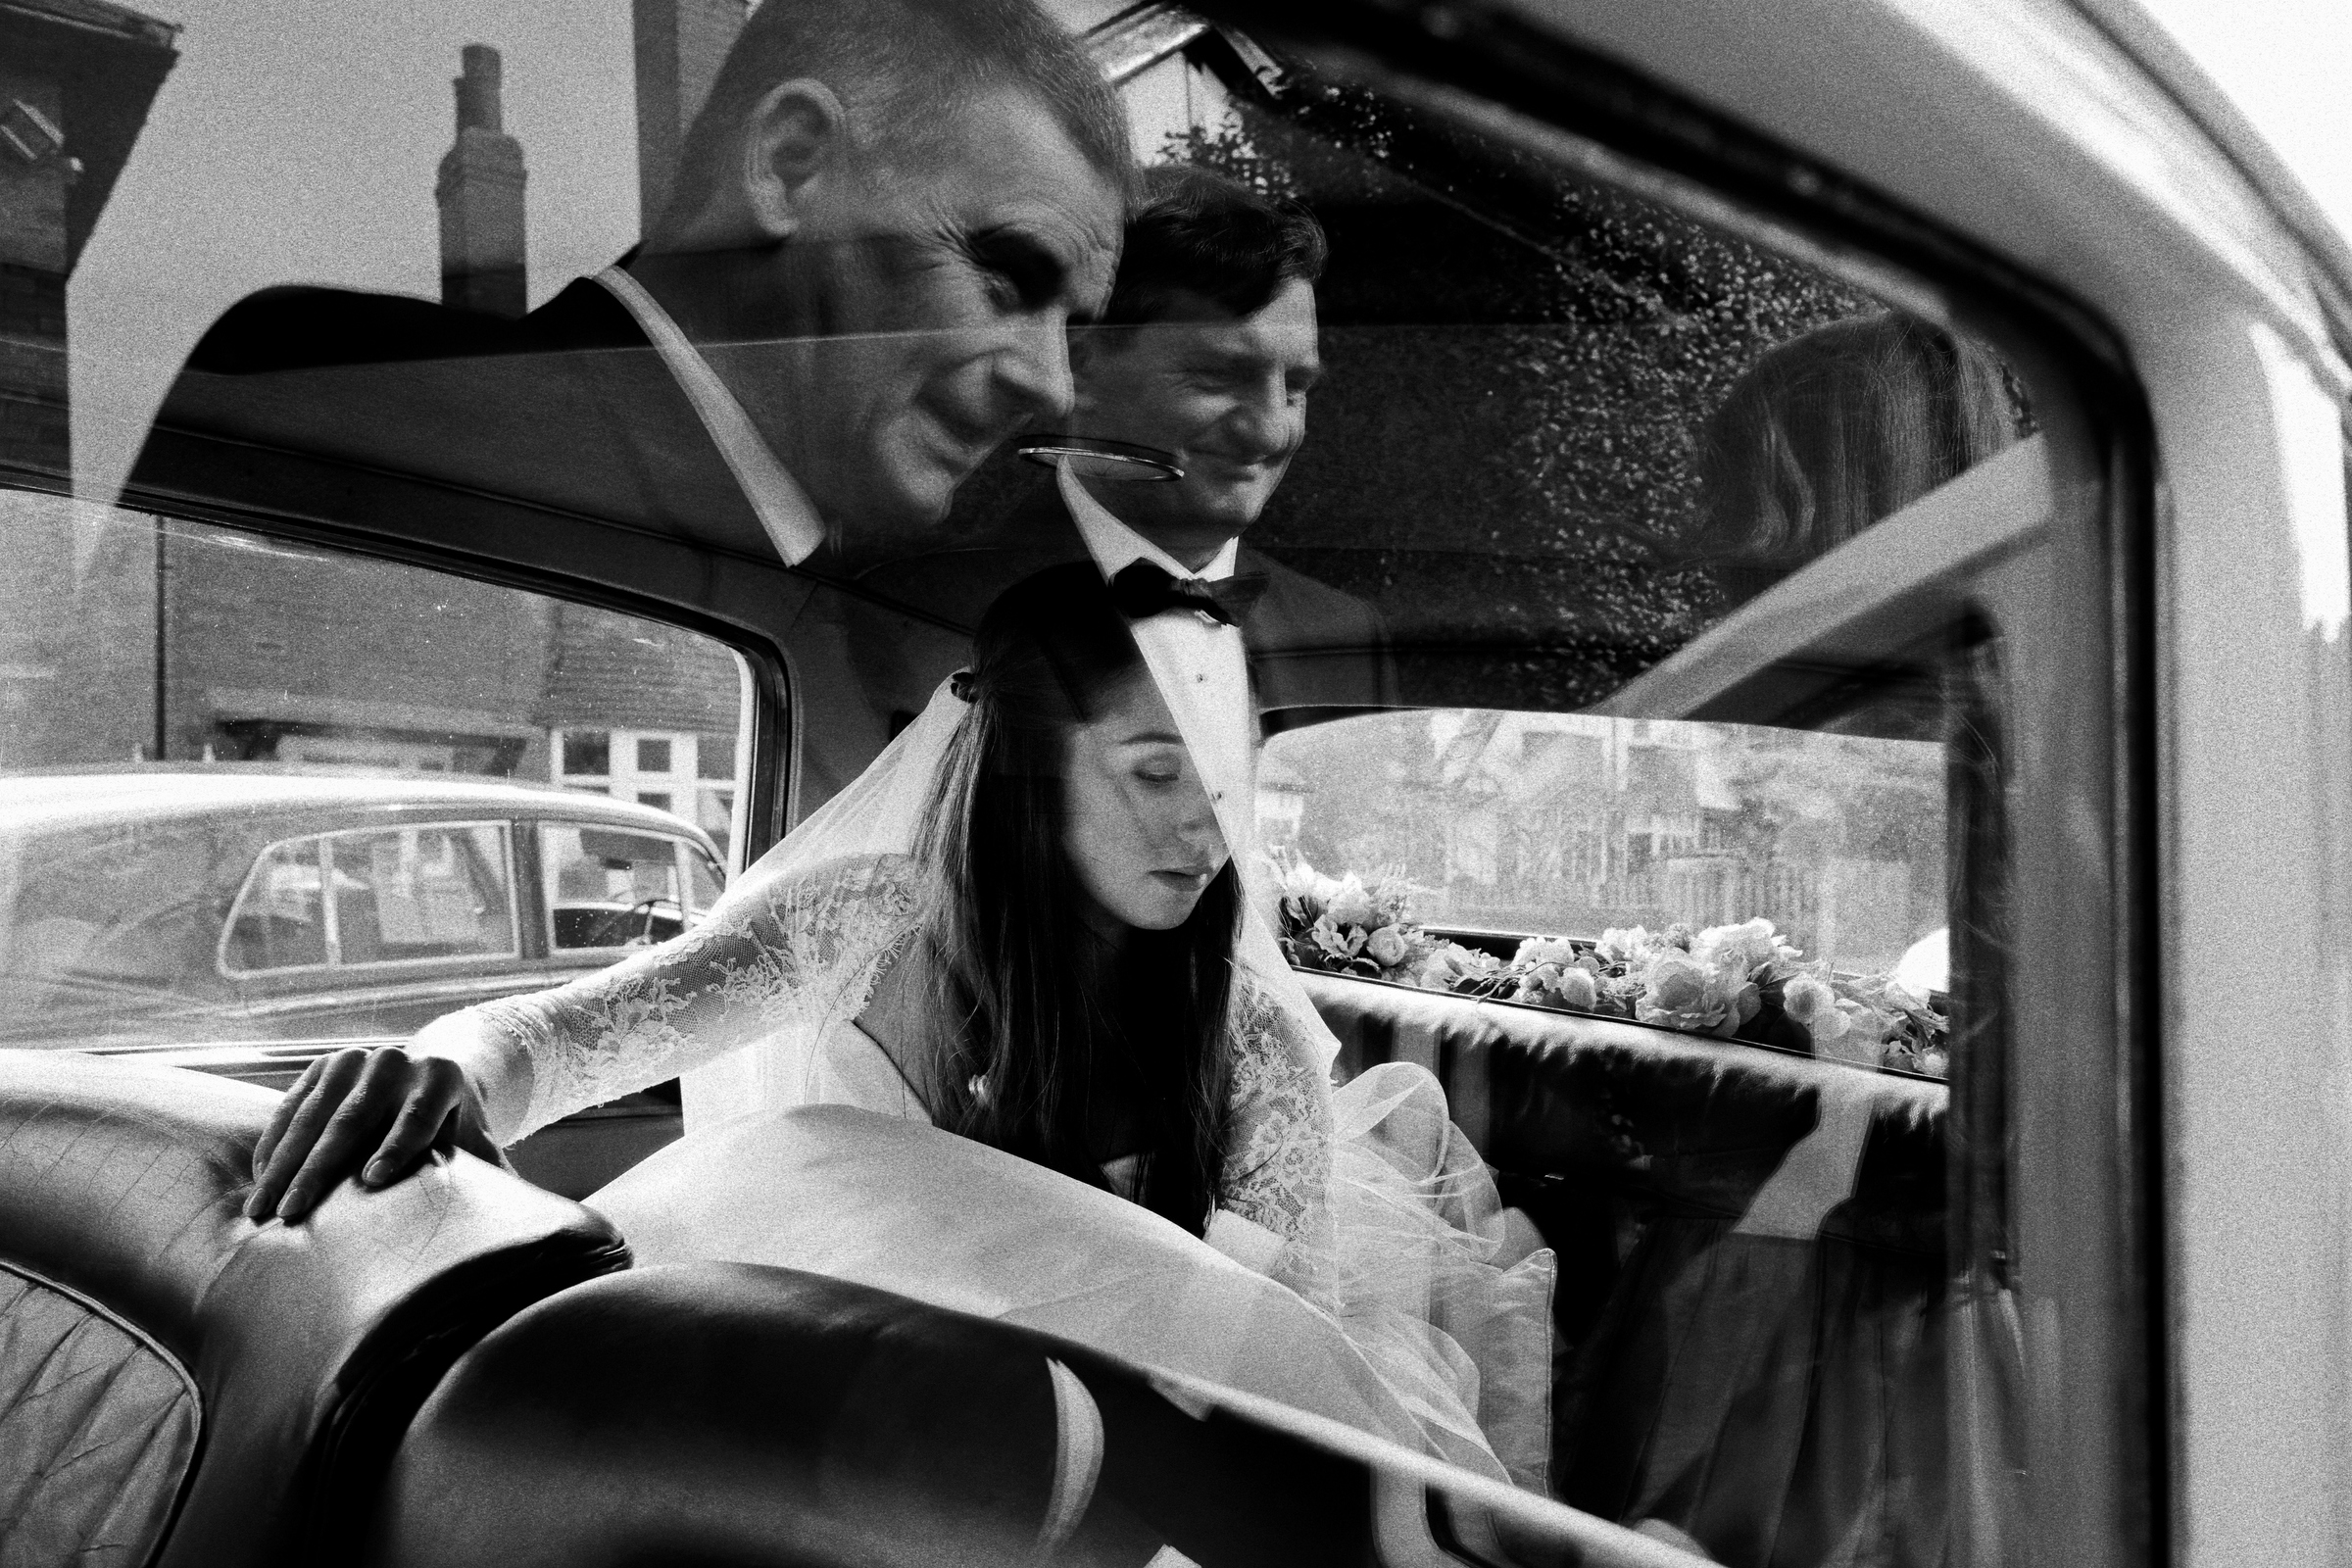 Reflection of father and groom awaiting bride getting out of limo - photo by Jeff Ascough